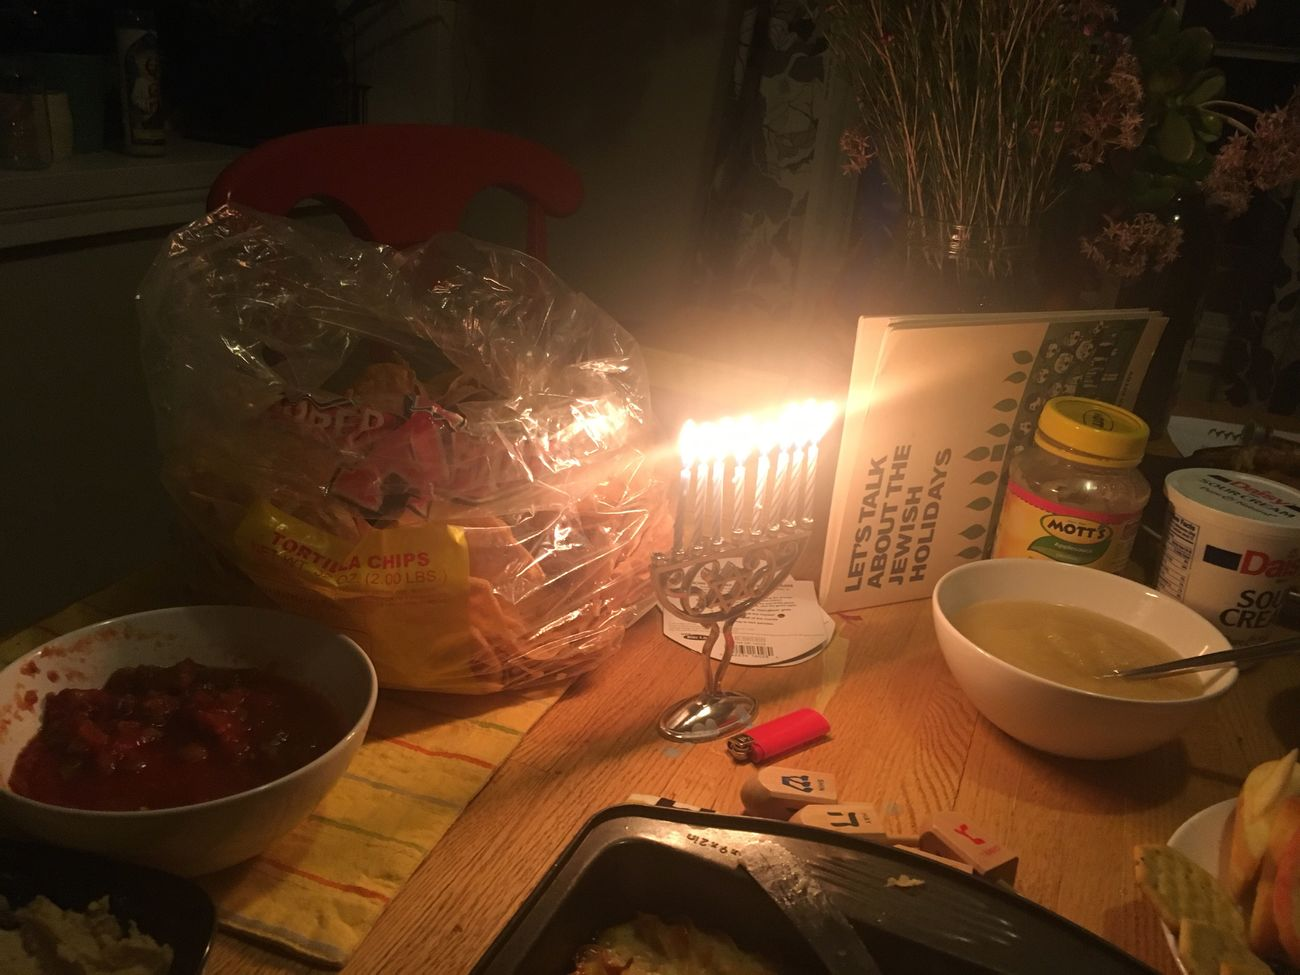 Food And Drink Celebration Tradition No People Table Home Interior Food Night Chanukah Hannukah Jewish Judaism Mexican Food Chips And Salsa Chips Holiday Festival Of Lights Menorah Candles Feast December